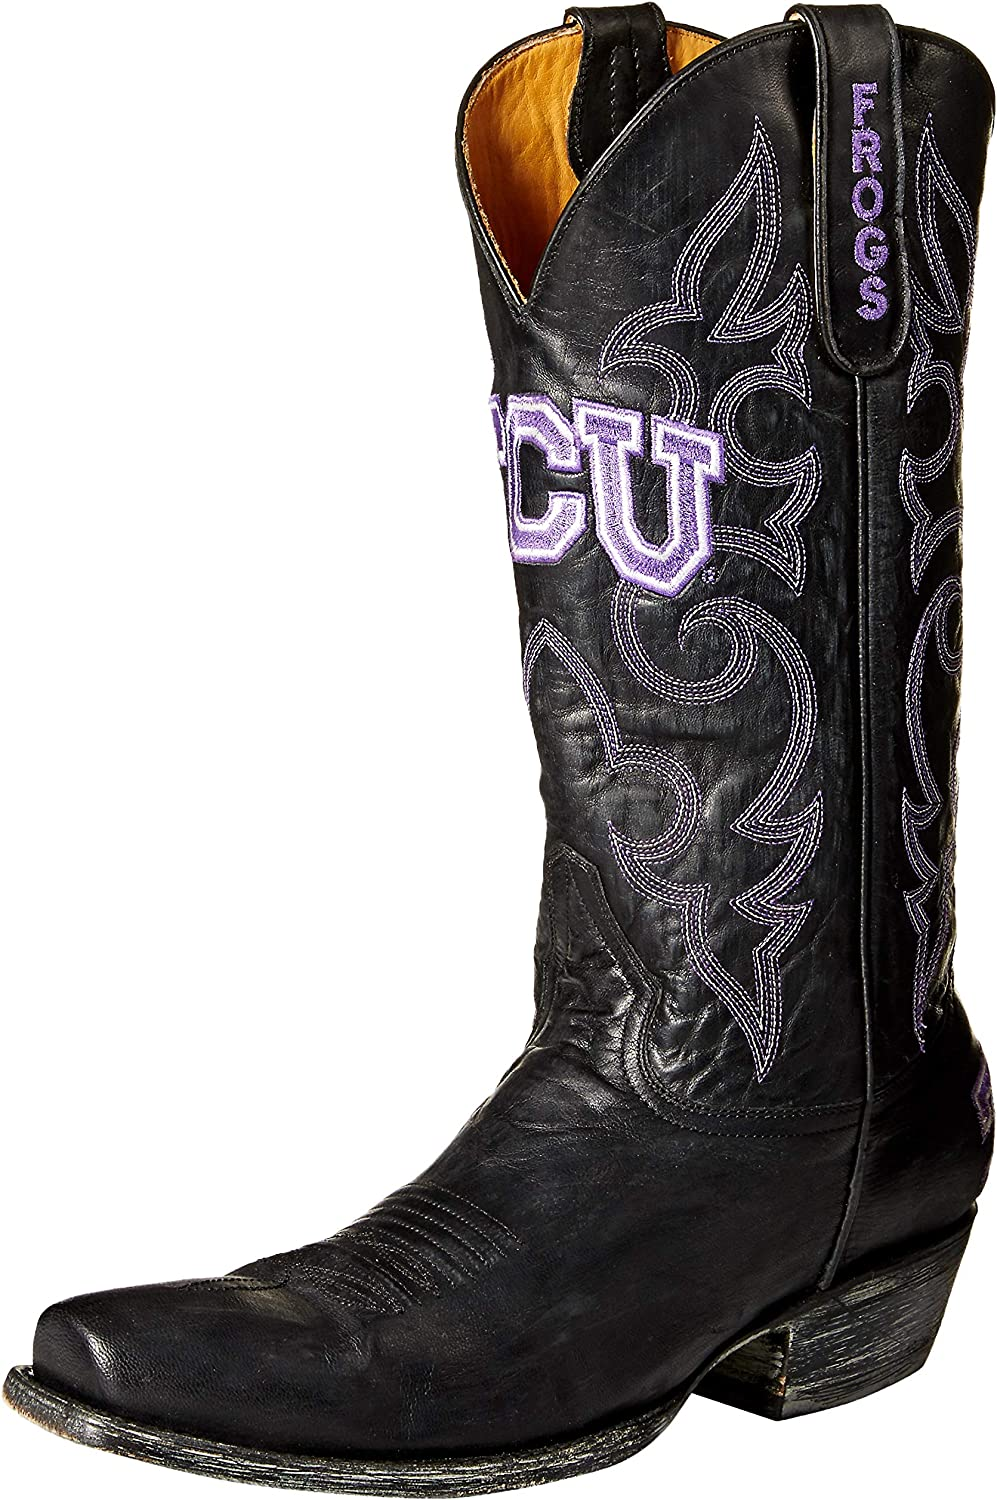 various colors release date: buy popular Amazon.com: NCAA TCU Horned Frogs Men's Board Room Style Boots ...